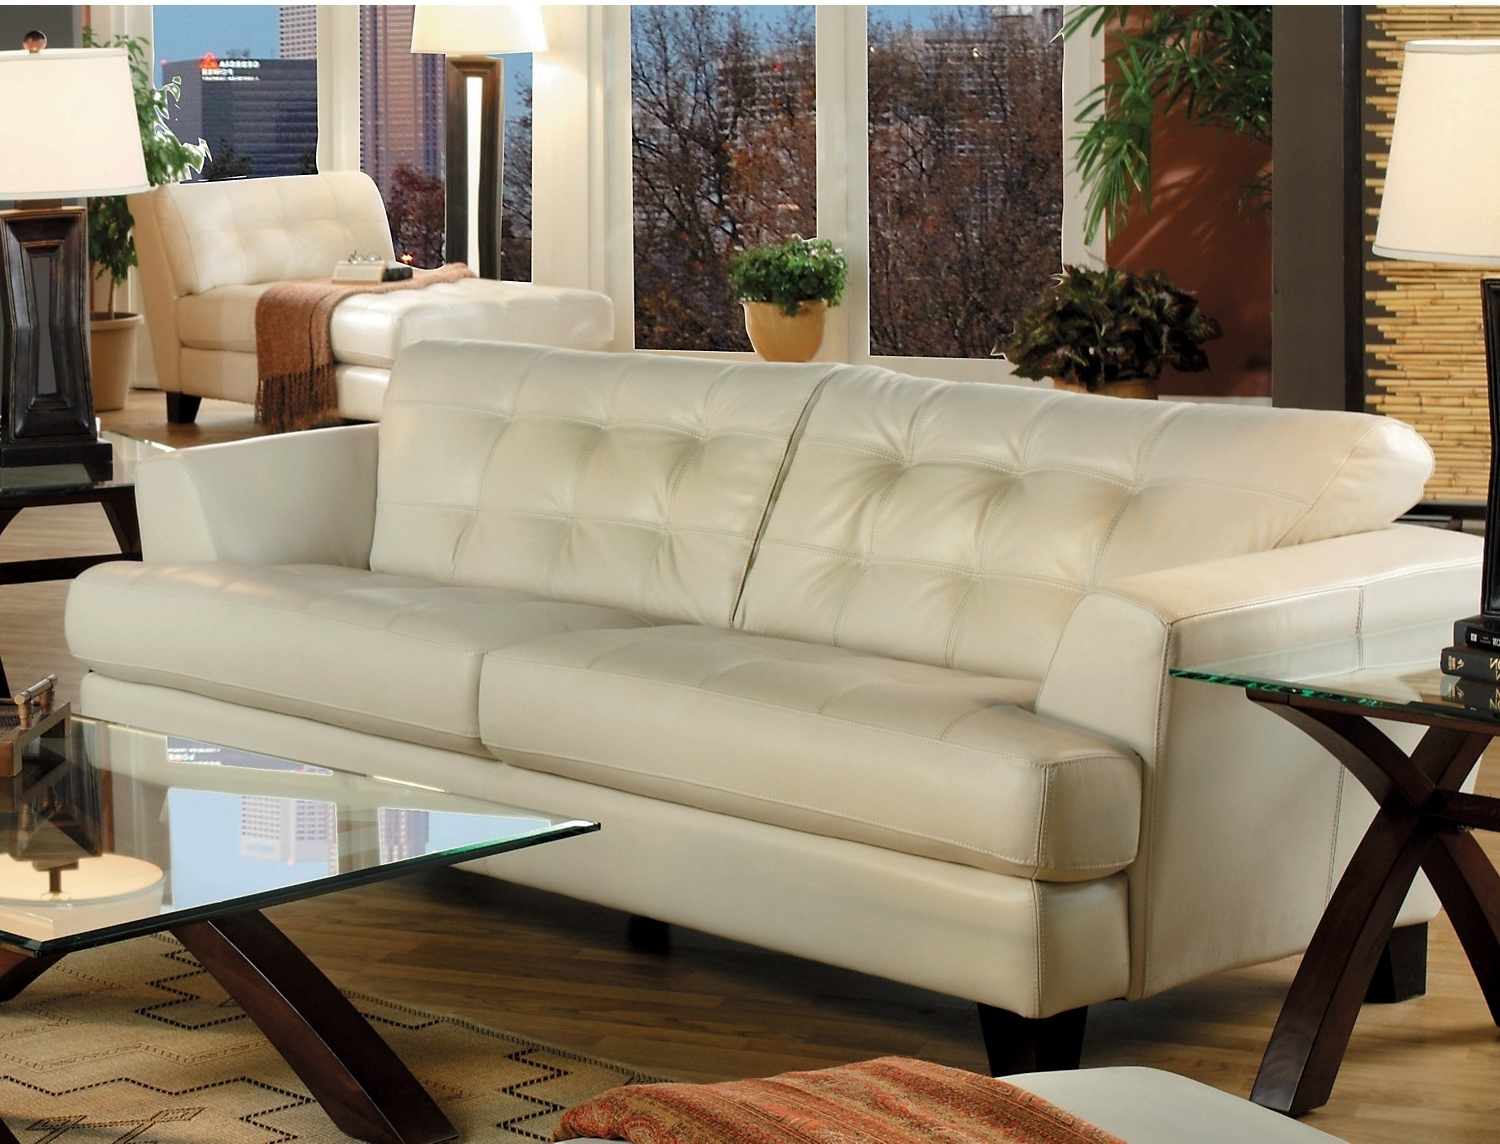 Home Regarding Current Cindy Crawford Sofas (View 11 of 15)